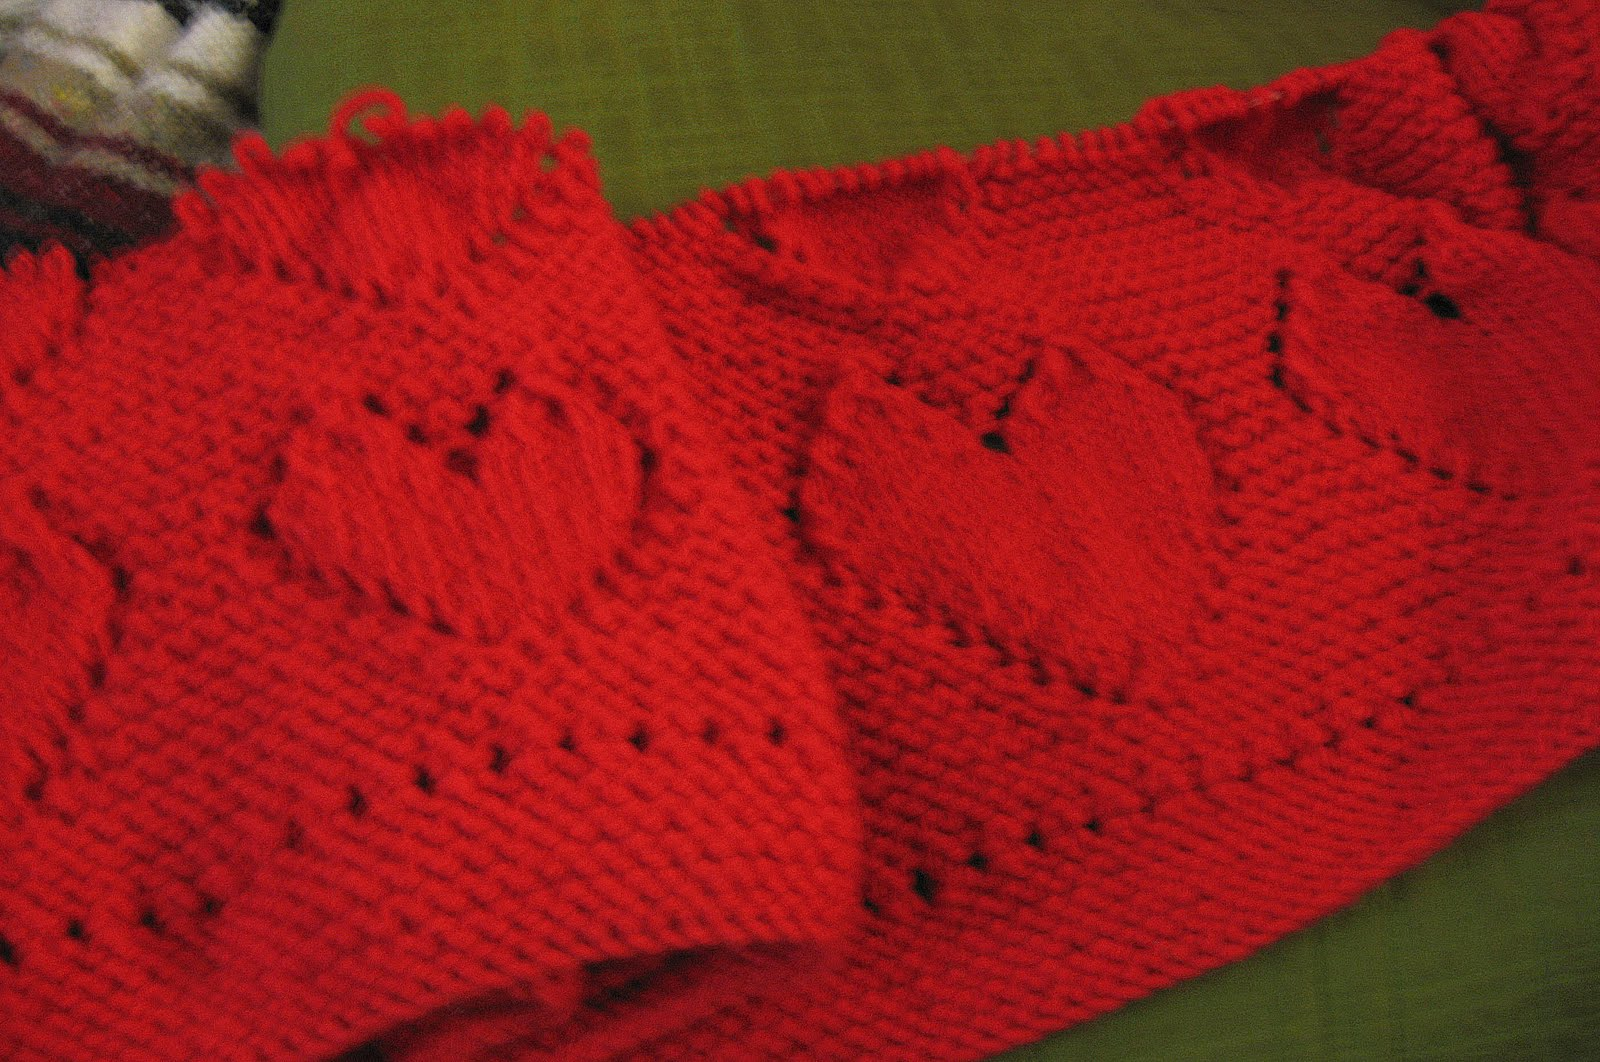 ... same pattern twice i think i ve started knitting a hearts blanket from